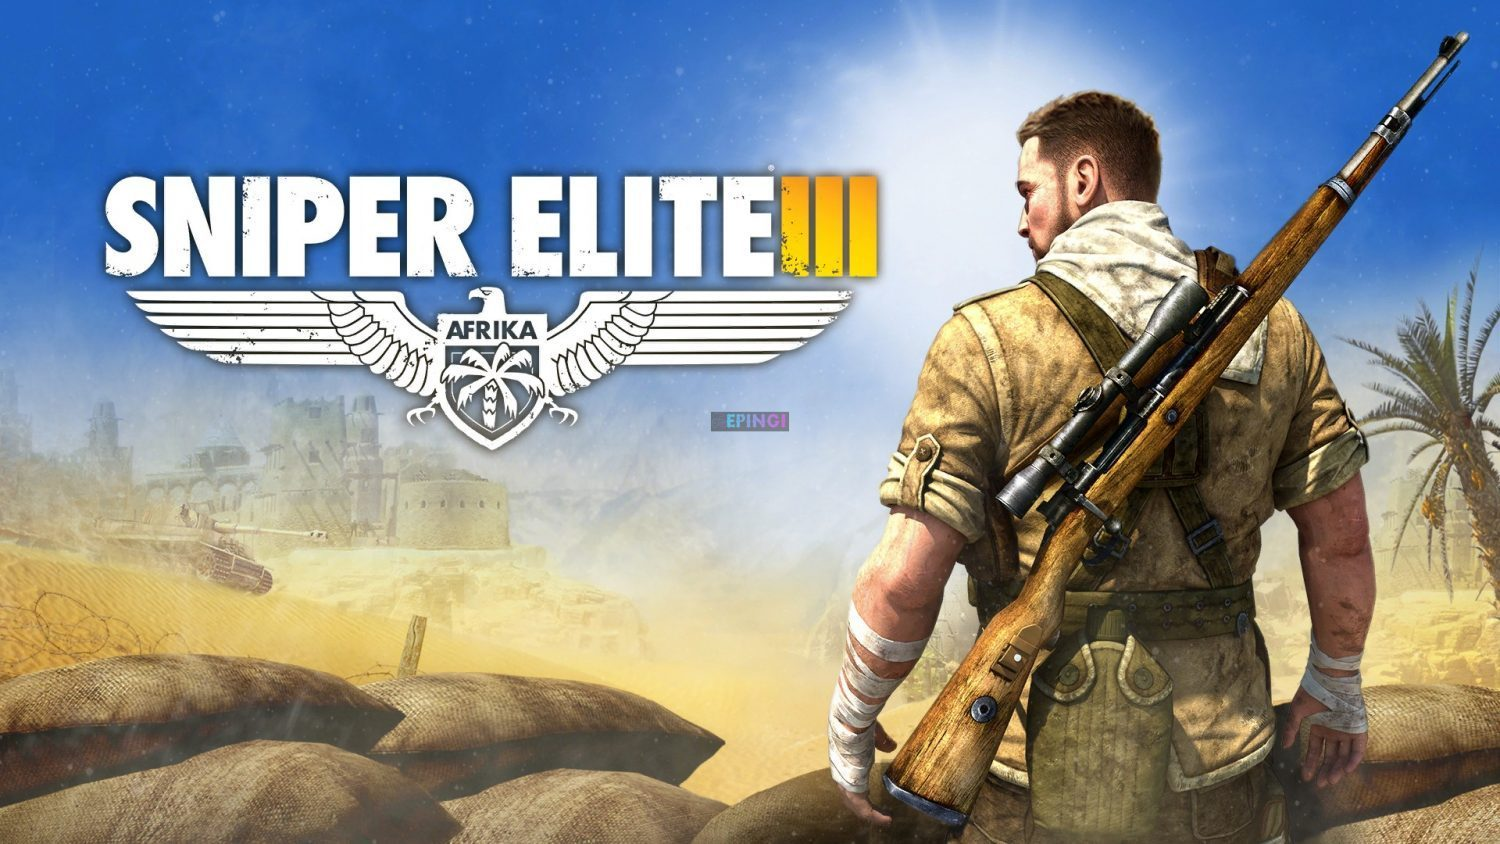 Sniper Elite 3 PC Version Full Game Free Download - 5 Game Terbaik untuk Komputer dengan RAM 4GB